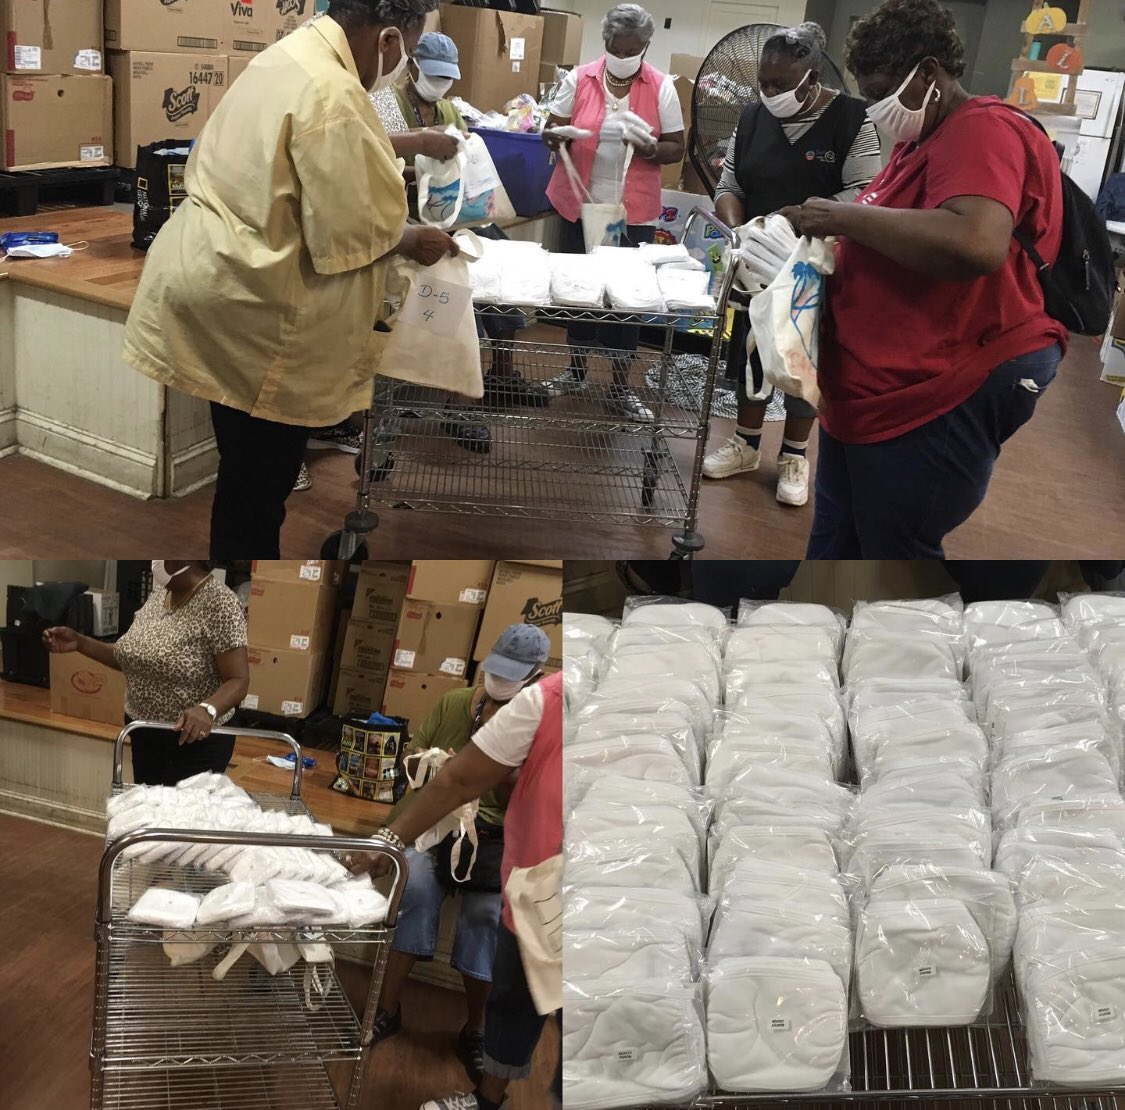 SWEEAC received 2,000 face mask to share with our grocery home delivery families and our volunteers courtesy of @sockfancy.  🙏🙏🙏The mask are in great shape, washable and a product of @Hanes.  #Covid_19 #atlanta #nonprofit #MakeADifference #thankyou https://t.co/g1f0pCv1tt